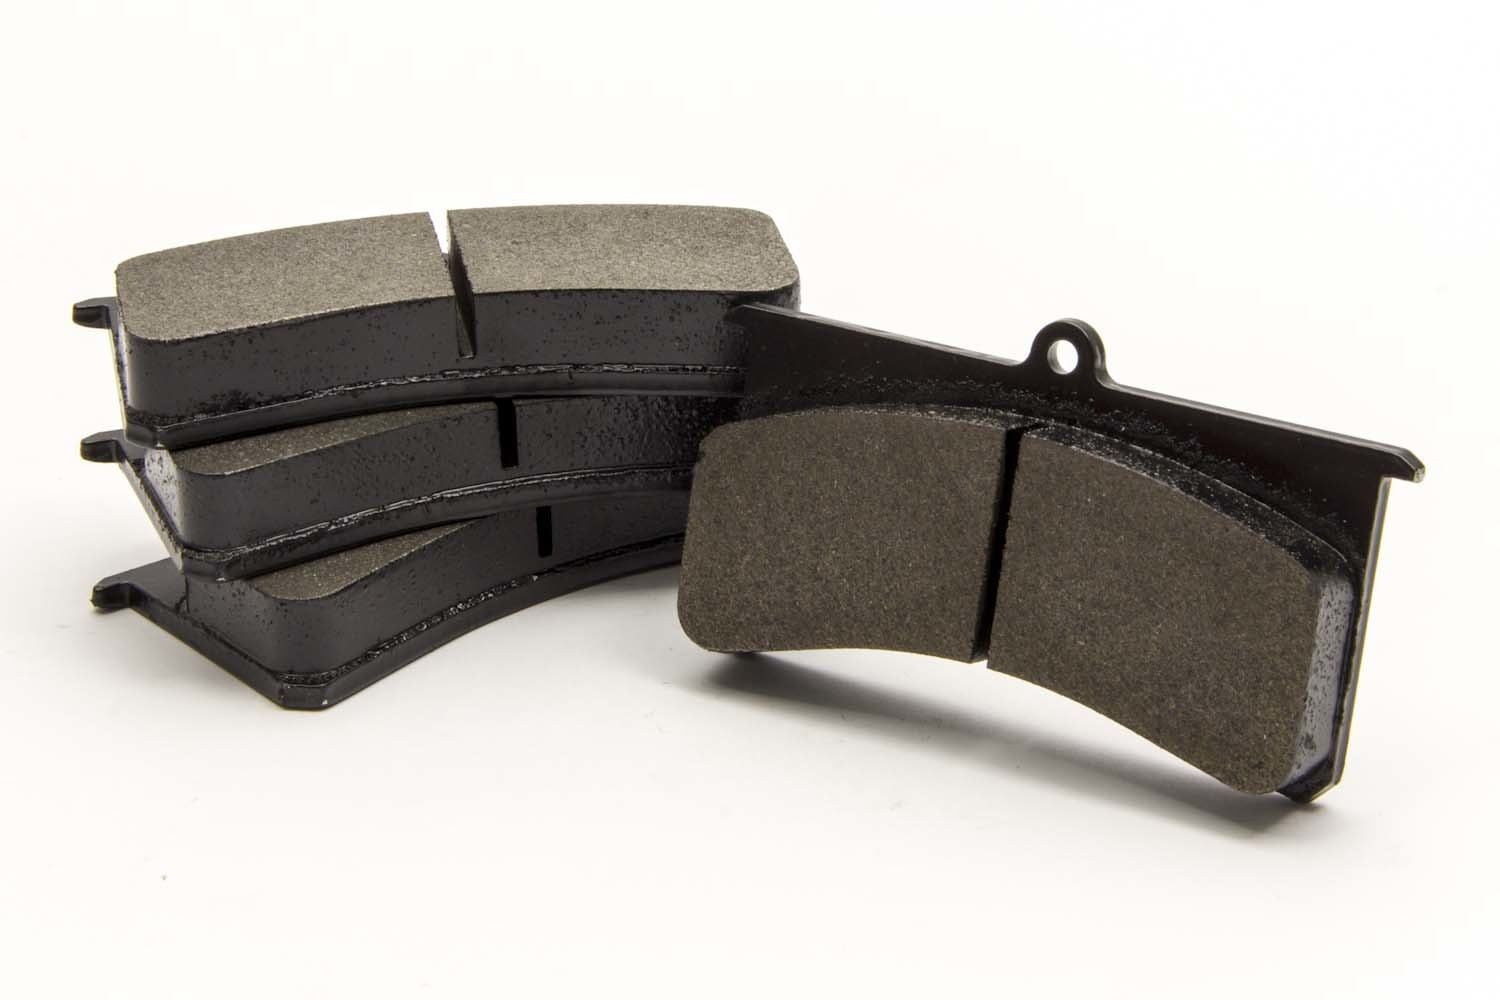 Afco Racing Products Brake Pads C1 for F88 Caliper